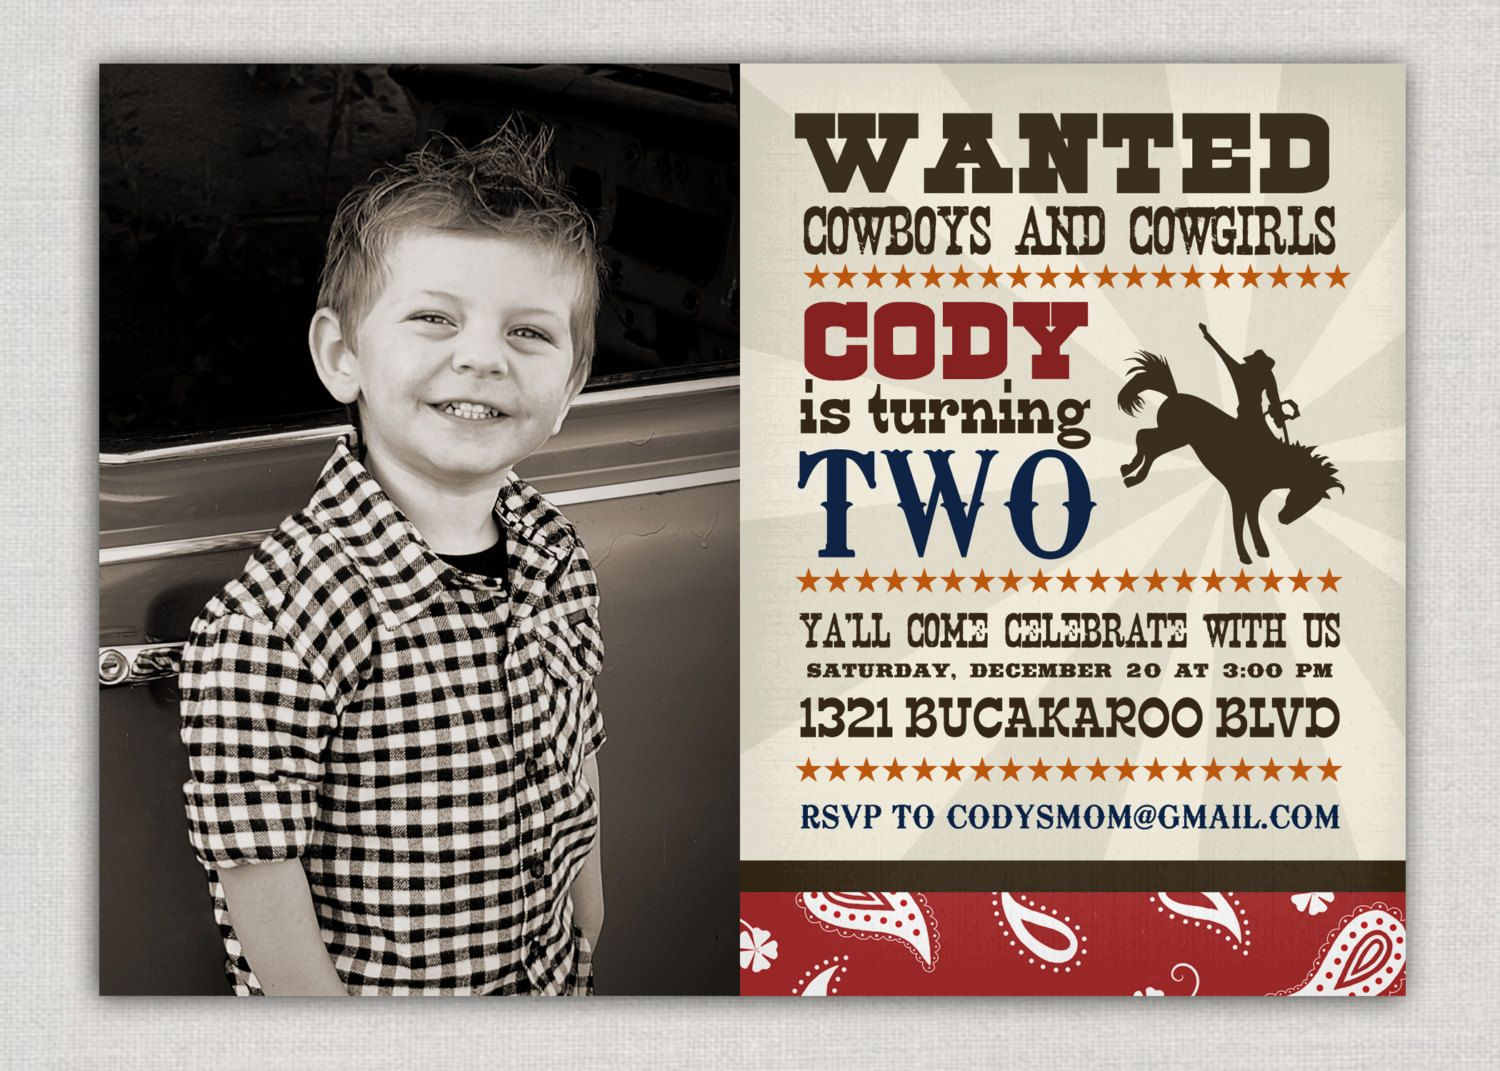 Cowboy party invitation ideas - Find This Pin And More On Bday Ideas Cowboy Birthday Invitation